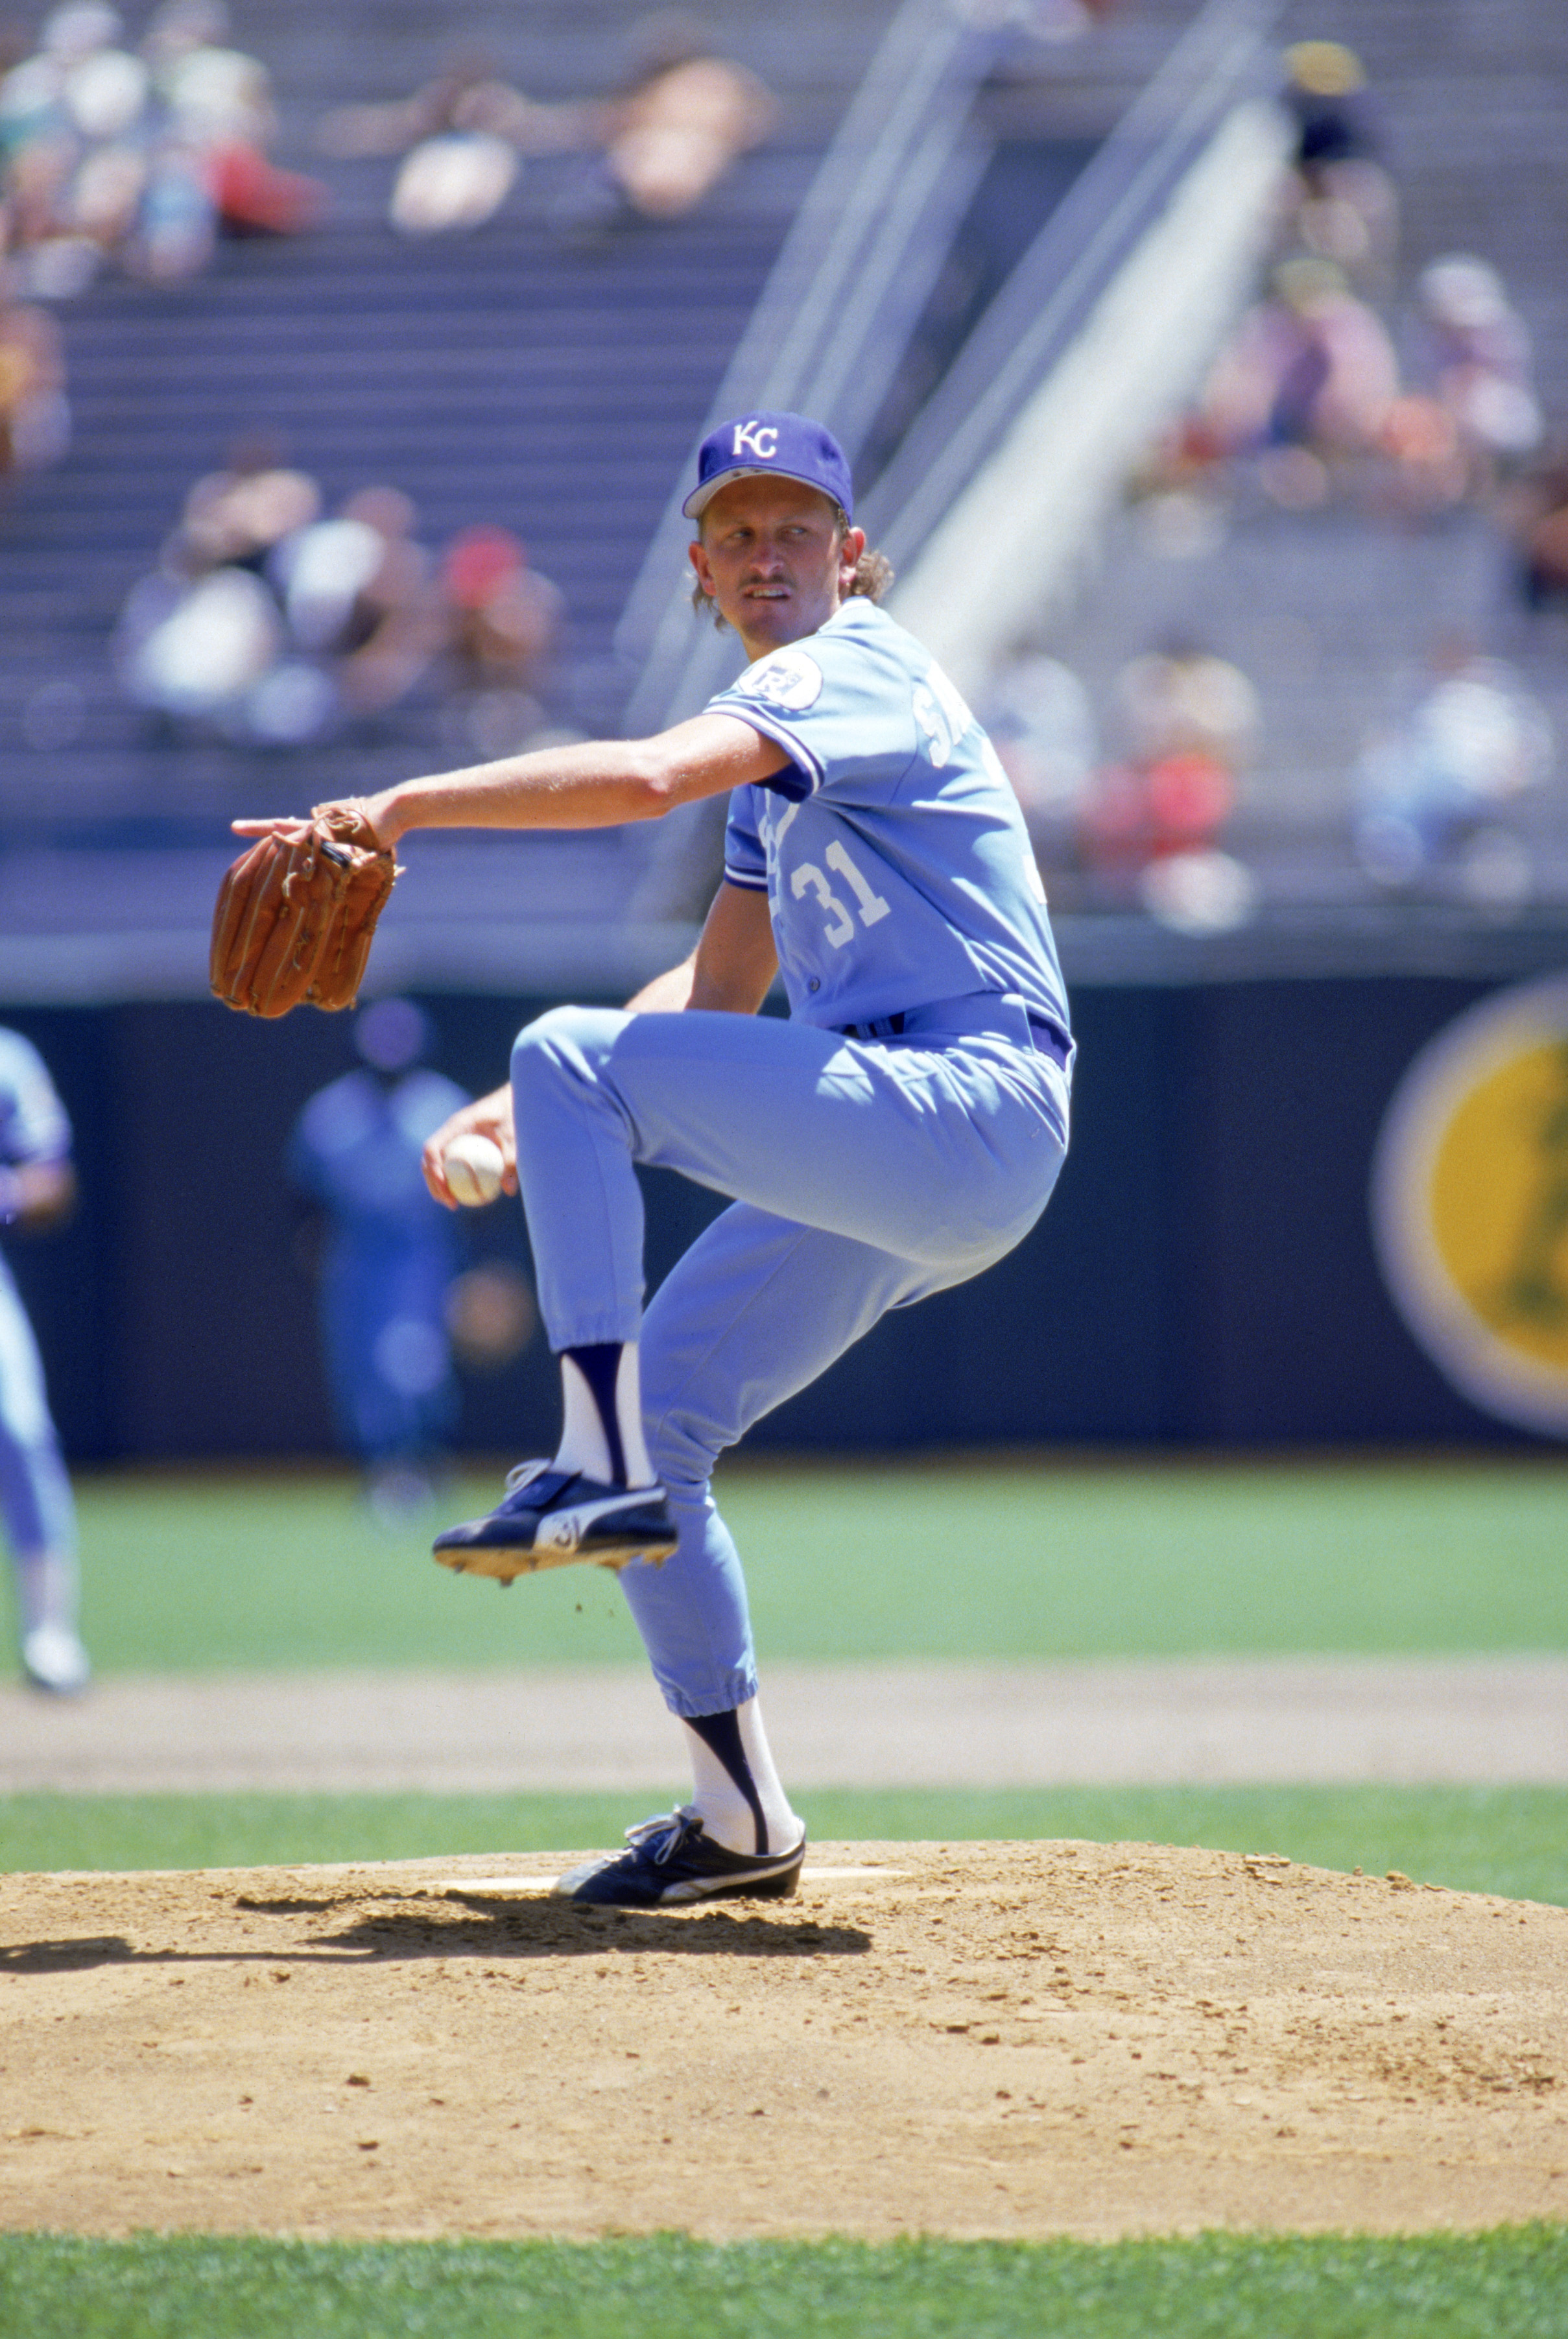 OAKLAND, CA - 1986:  Bret Saberhagen #31 of the Kansas City Royals winds up for a pitch during a game against the Oakland Athletics at Oakland-Alameda County Coliseum in 1986 in Oakland, California.  (Photo by Otto Greule Jr/Getty Images)